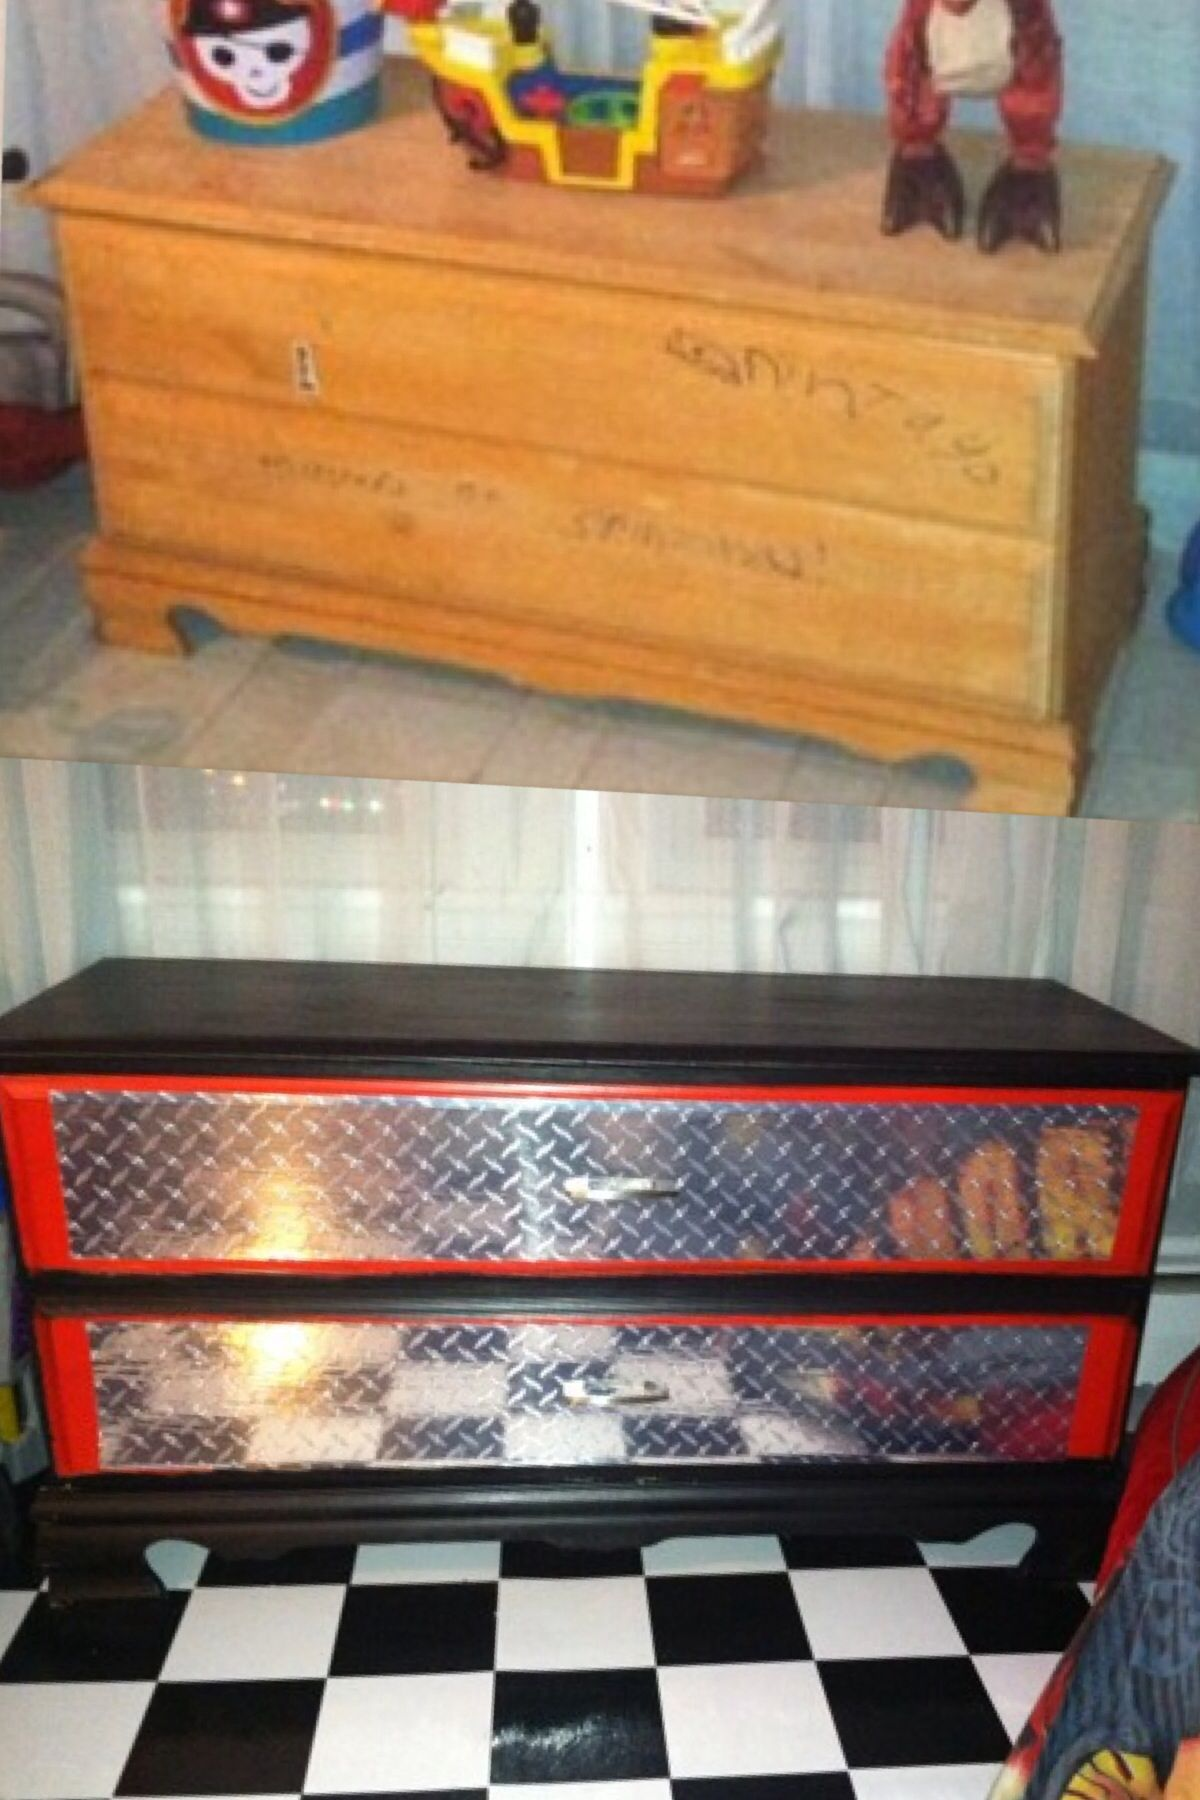 Old Toy Box Transformed Into A Snap On Tool Box Toy Box Baby Boy Rooms Girl Toy Storage Boy Nursery Cars